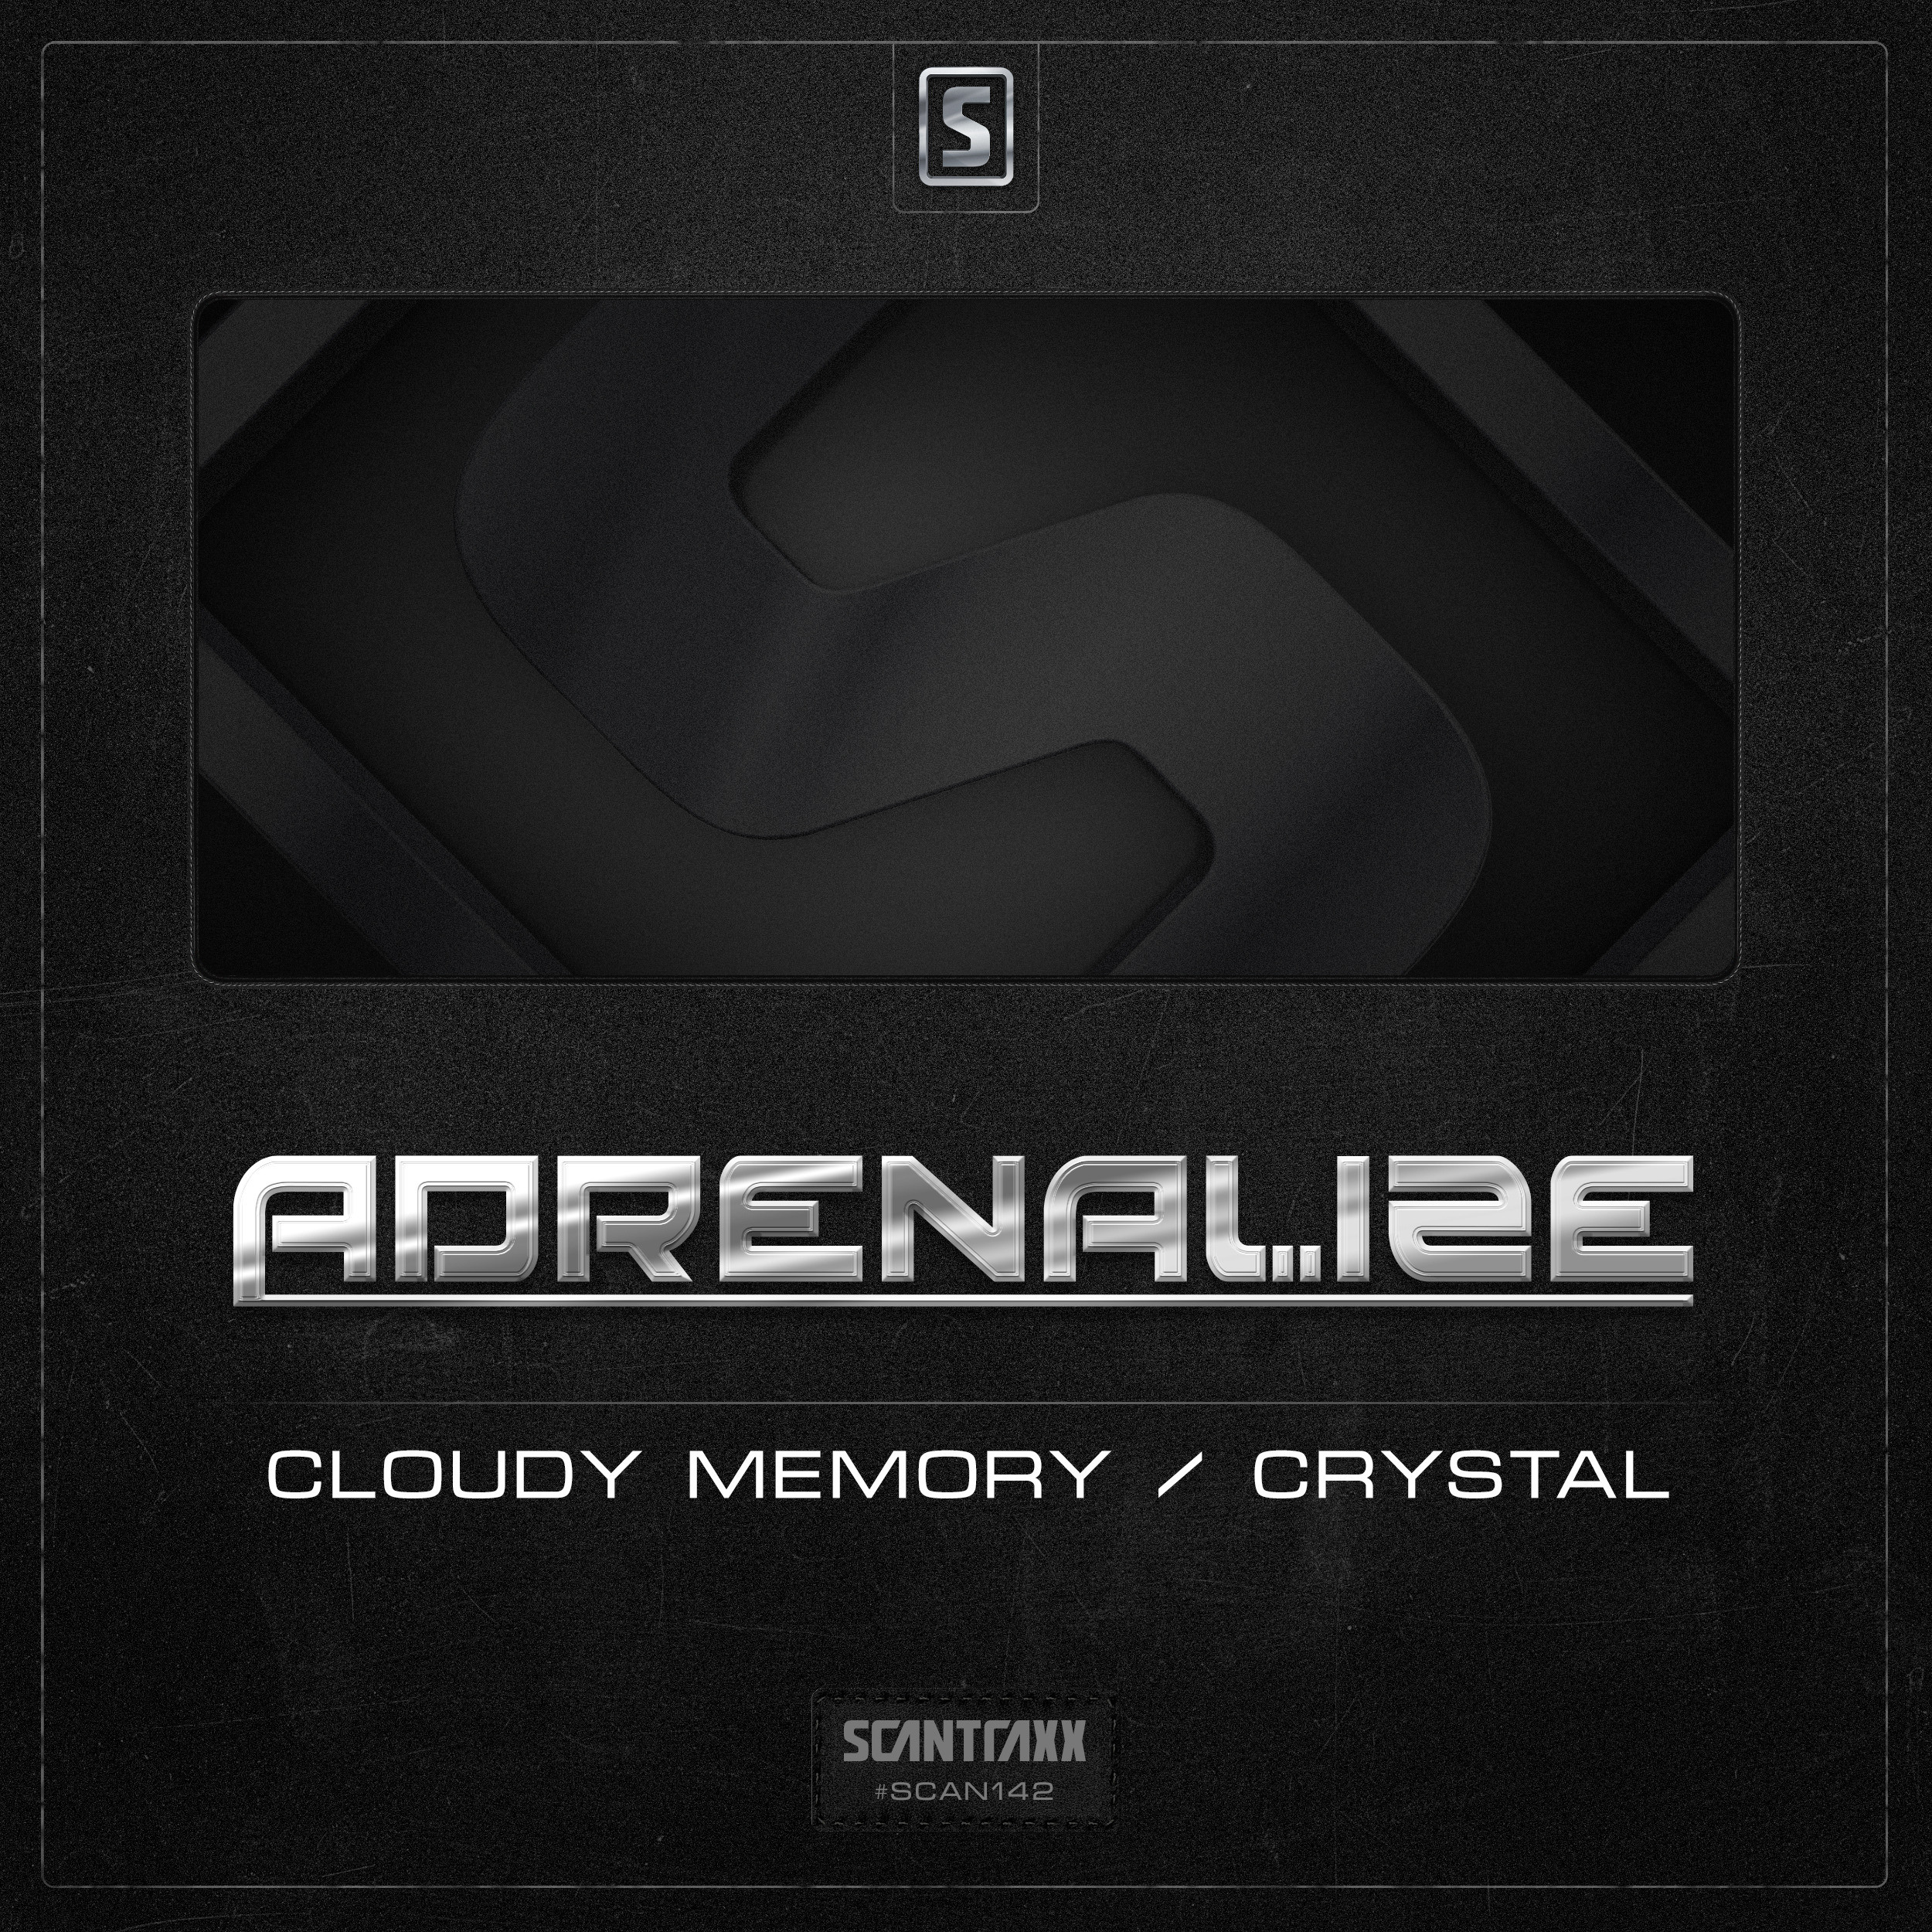 Andrenalize Cloudy Memory